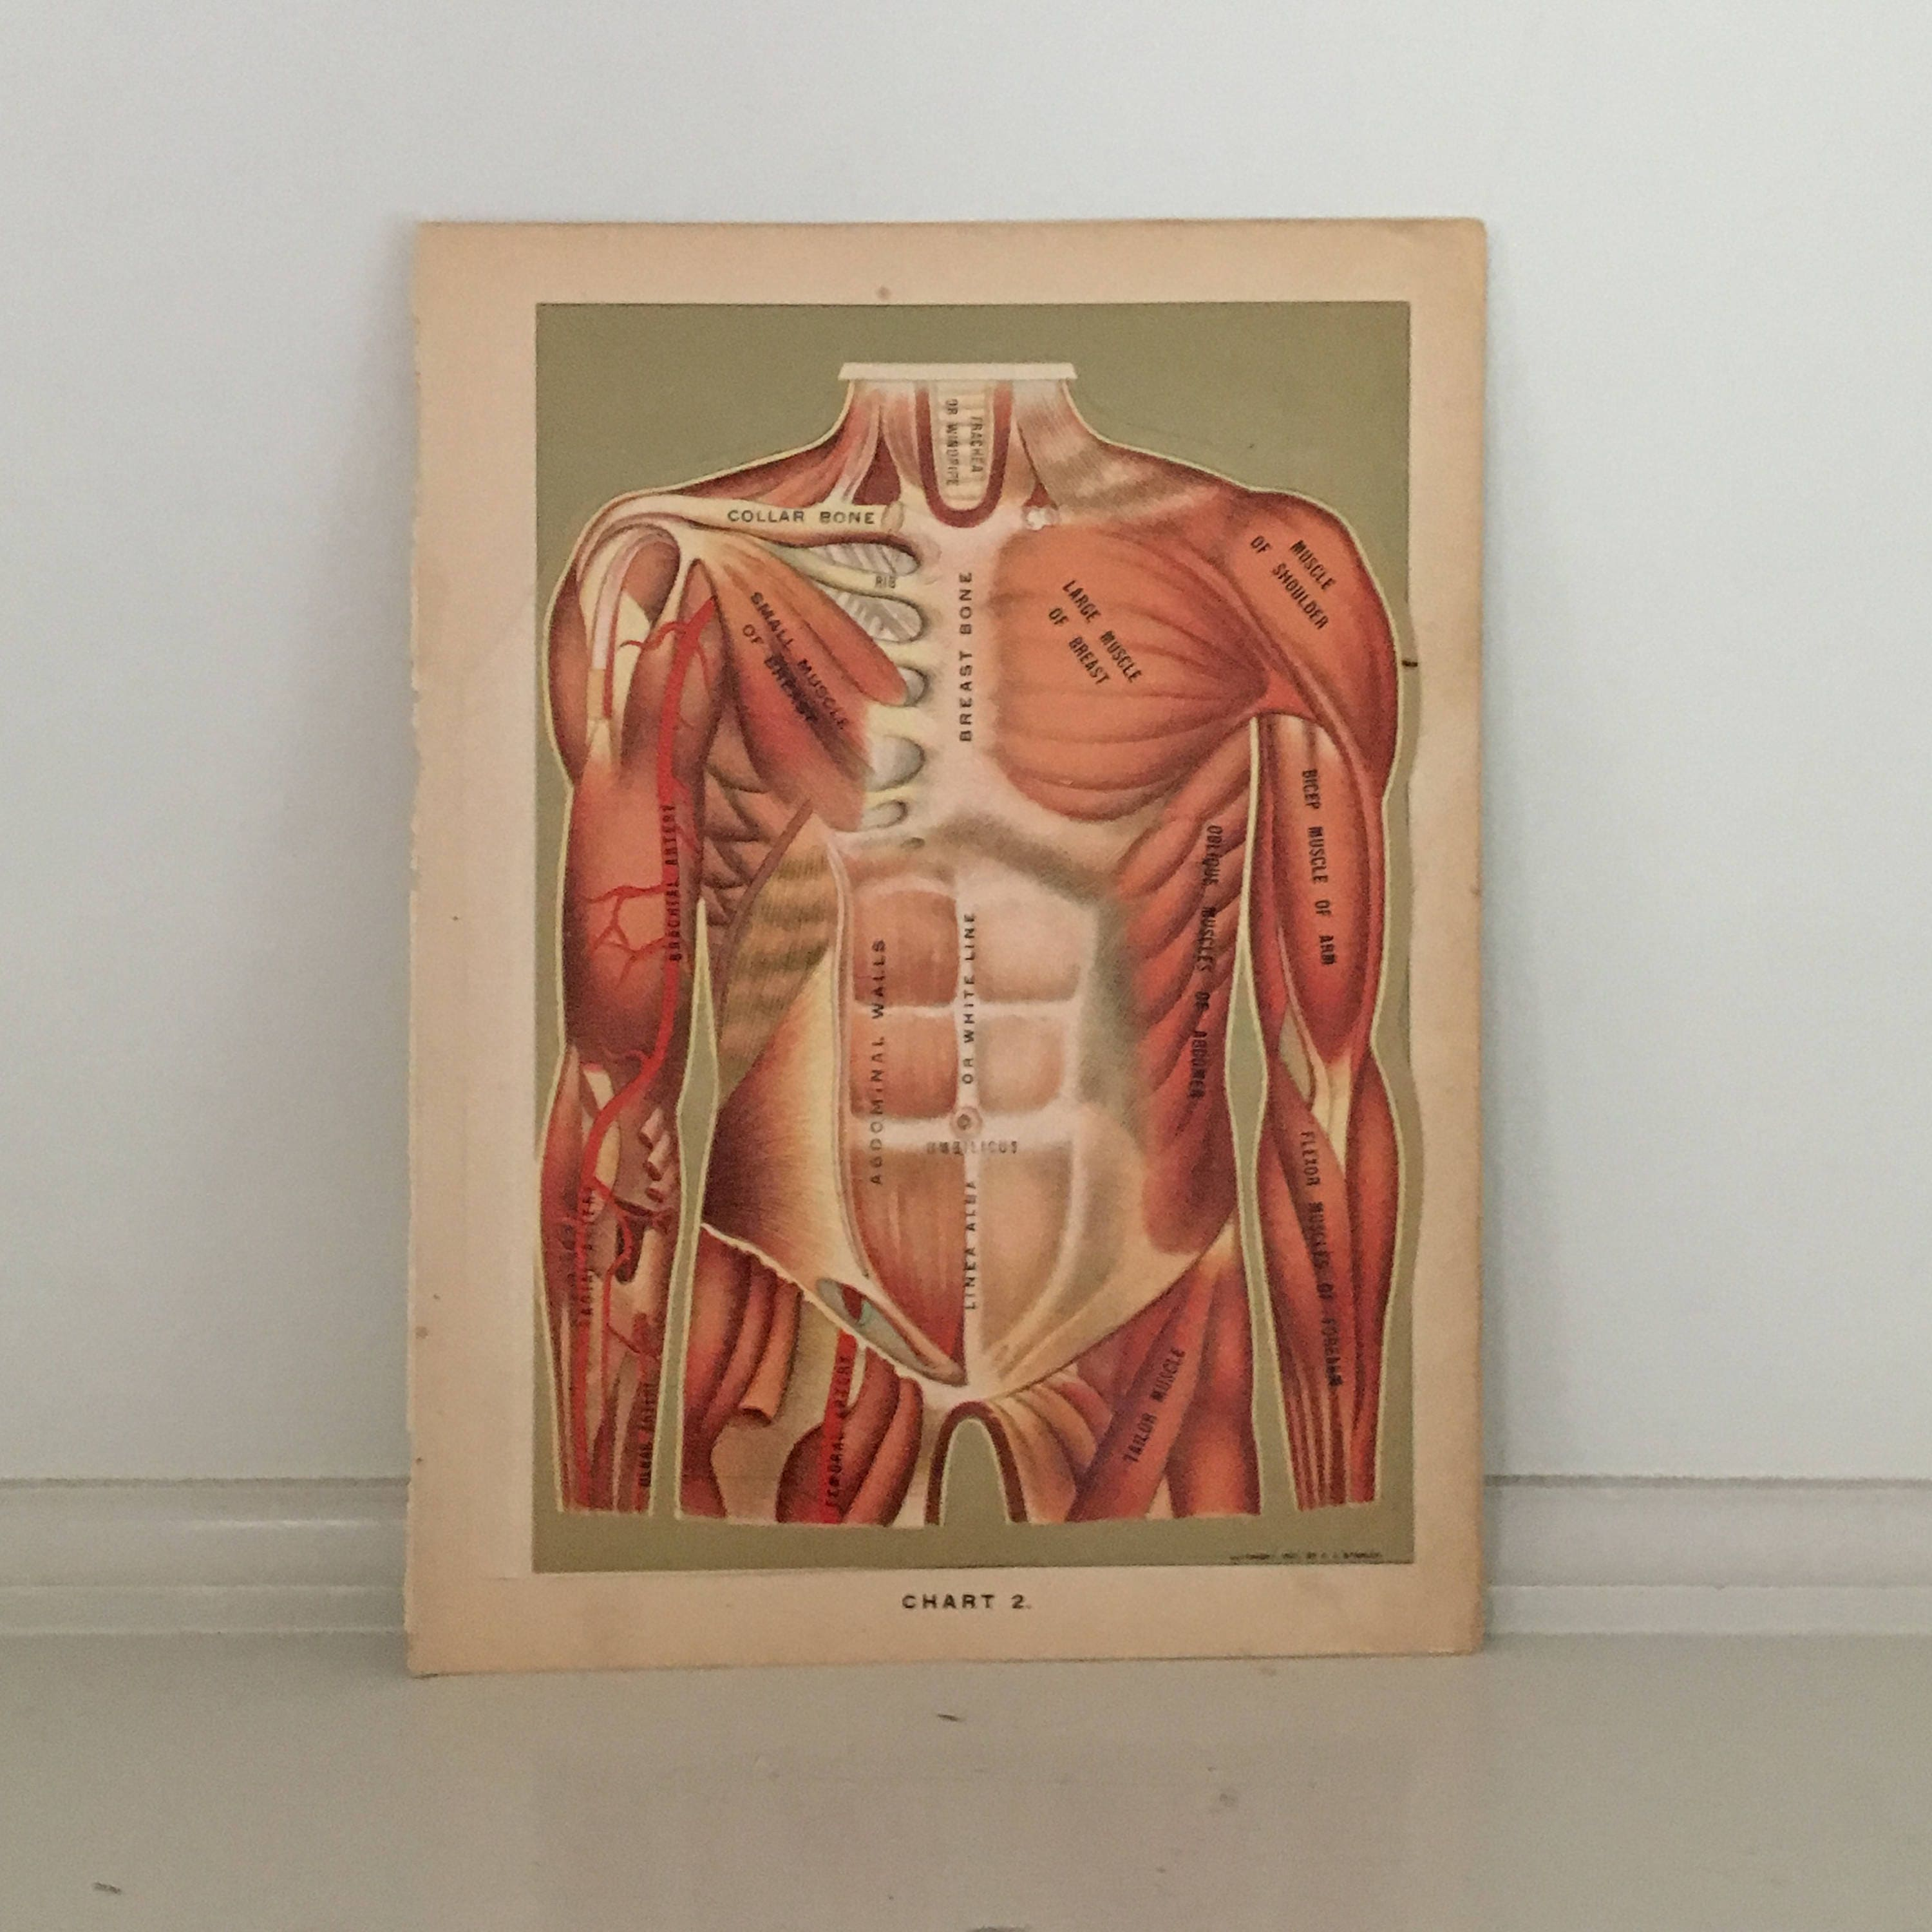 C 1903 Human Antique Anatomy Interactive Medical Lithograph Etsy